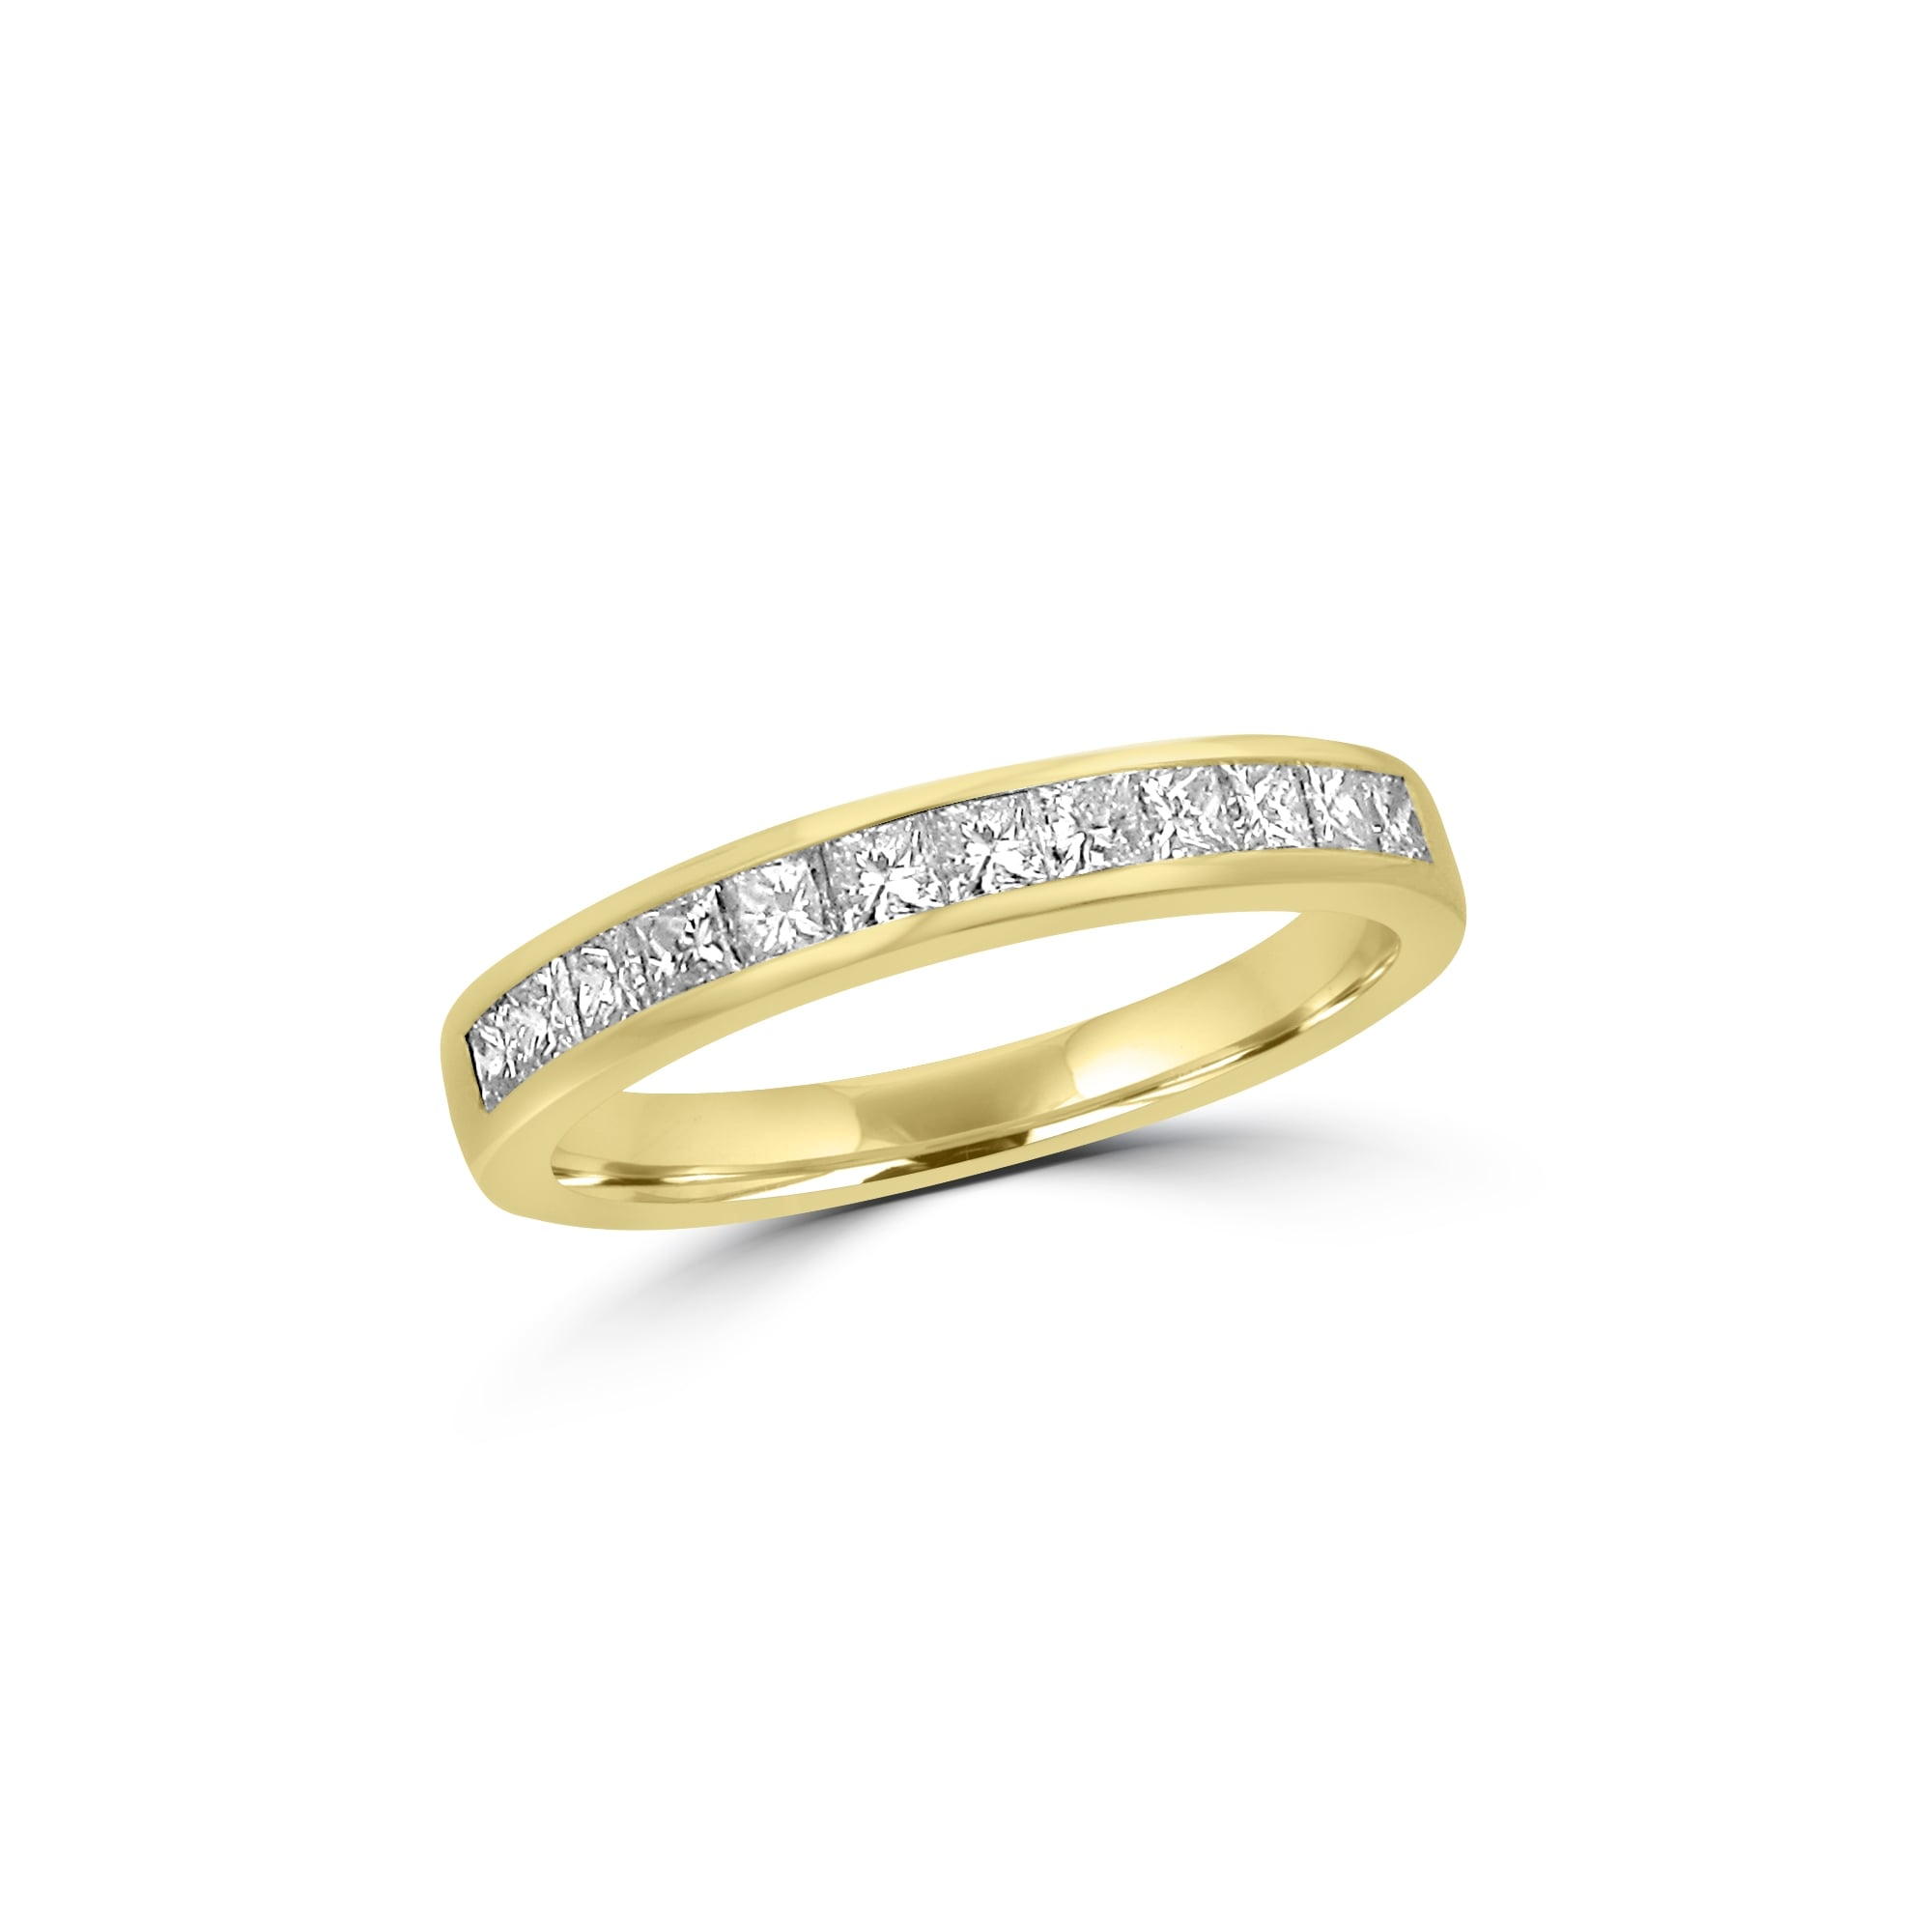 wedding ring gold rings rose itm rolling white tri tt carat band ebay yellow diamond eternity